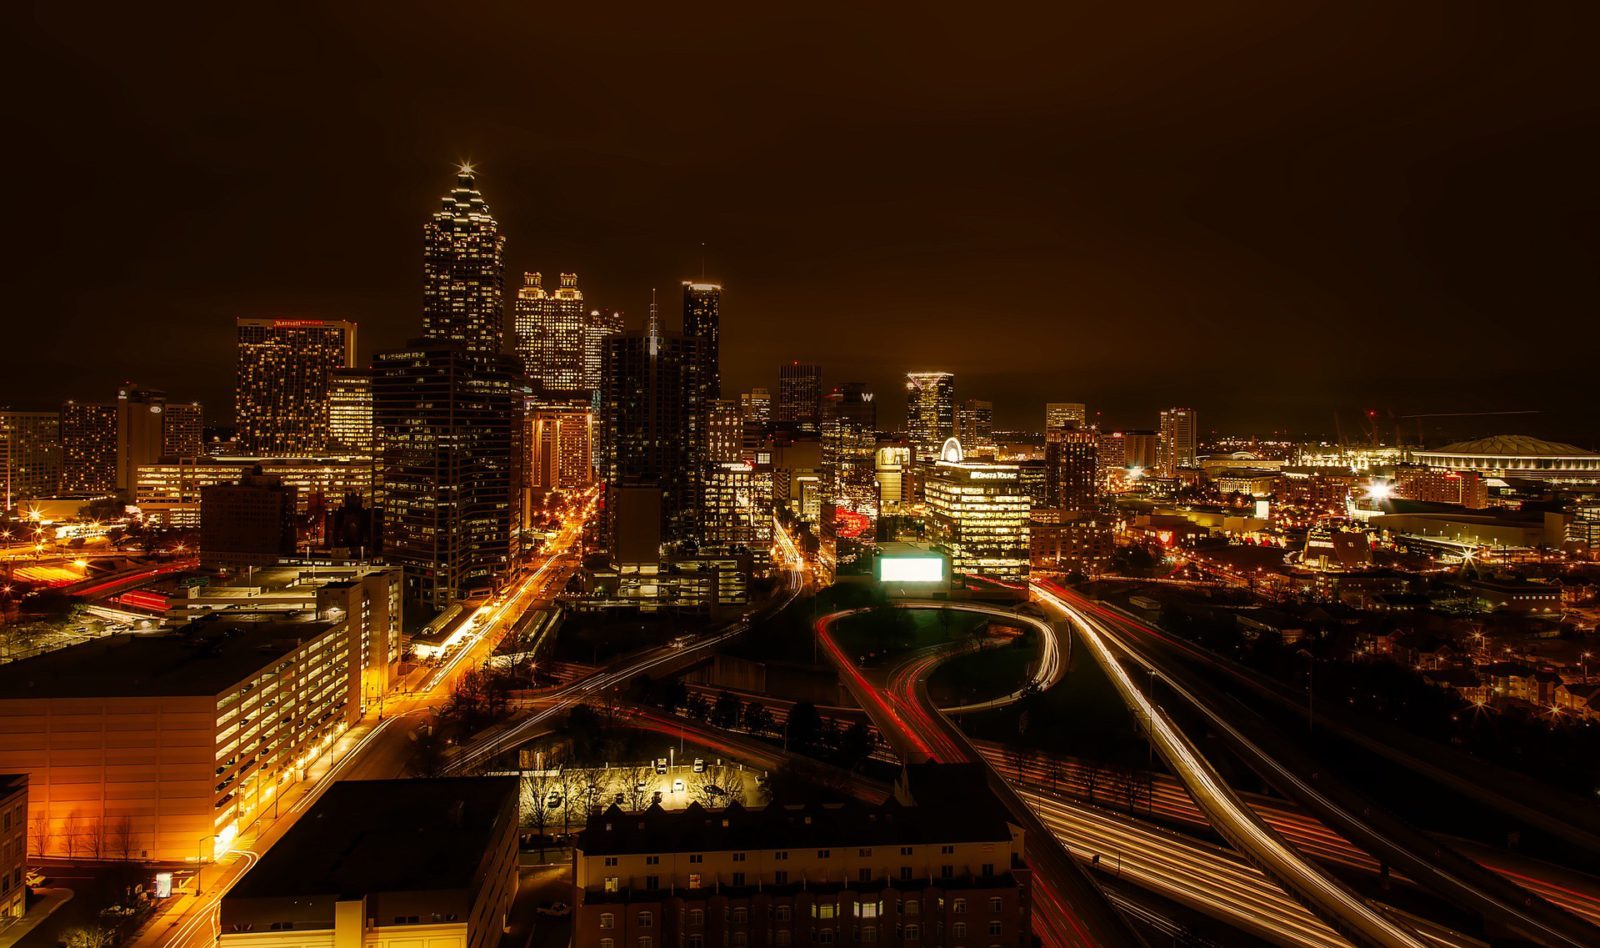 Hotel Deal For Atlanta Georgia #atlantageorgia #weekend